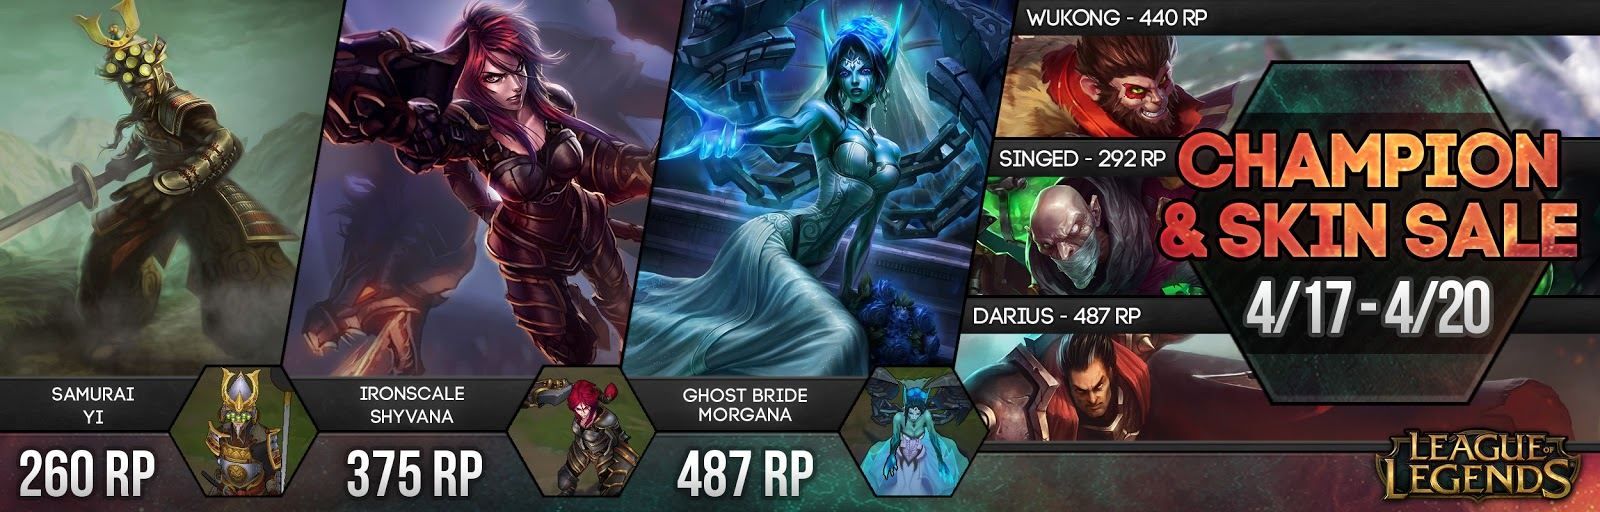 Surrender At 20 Champion And Skin Sale 417 420